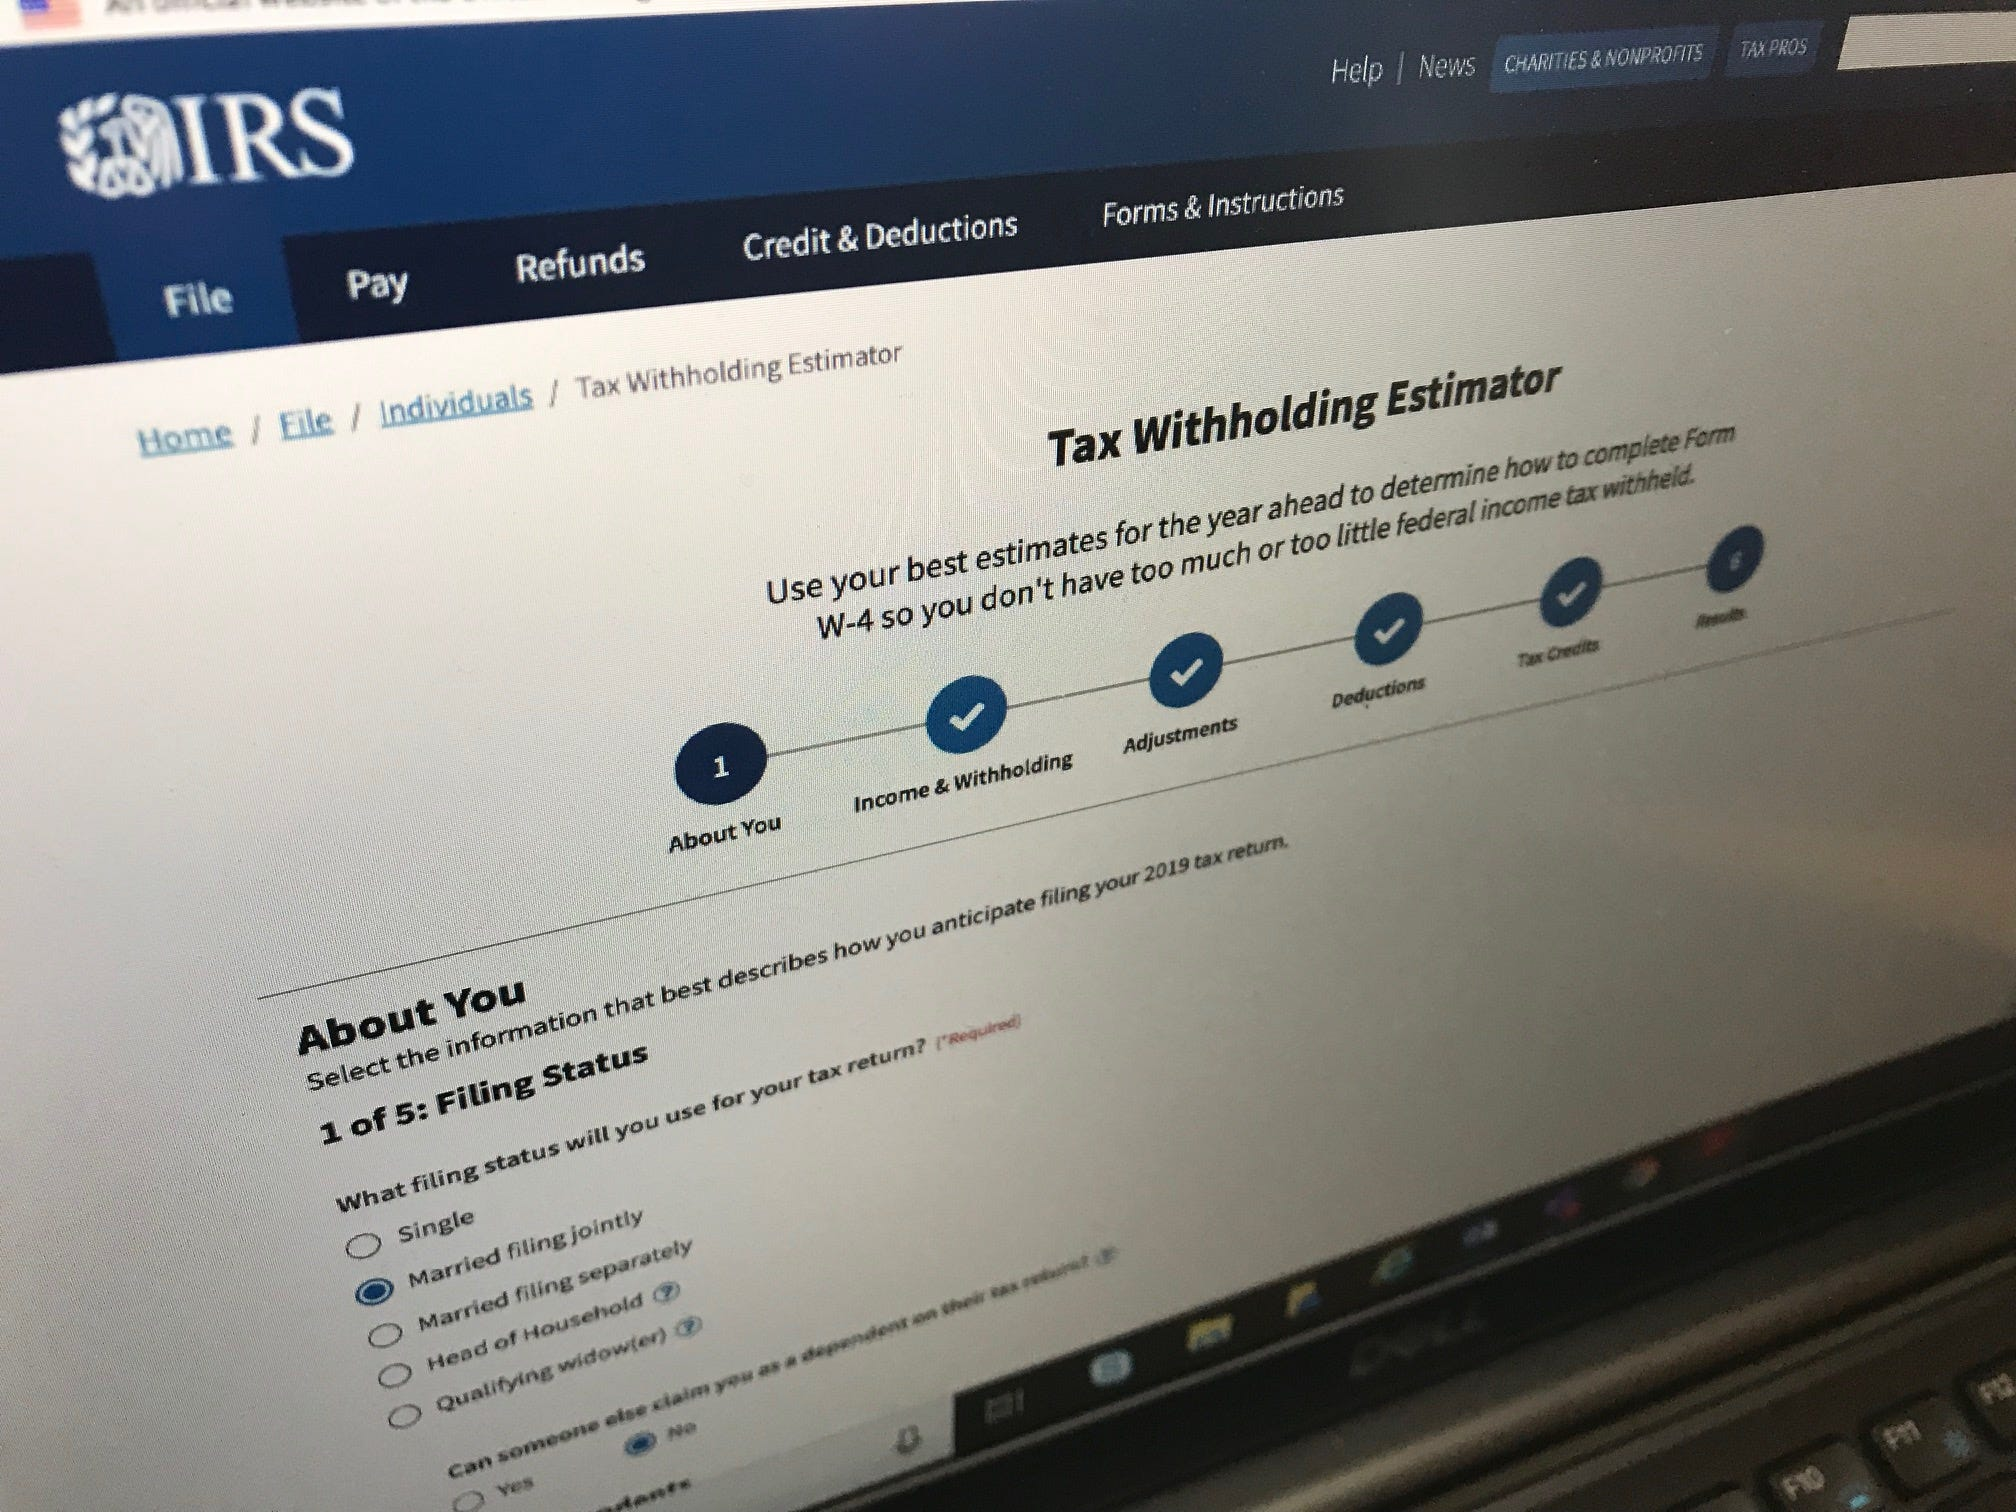 Want a bigger tax refund? New IRS estimator may help